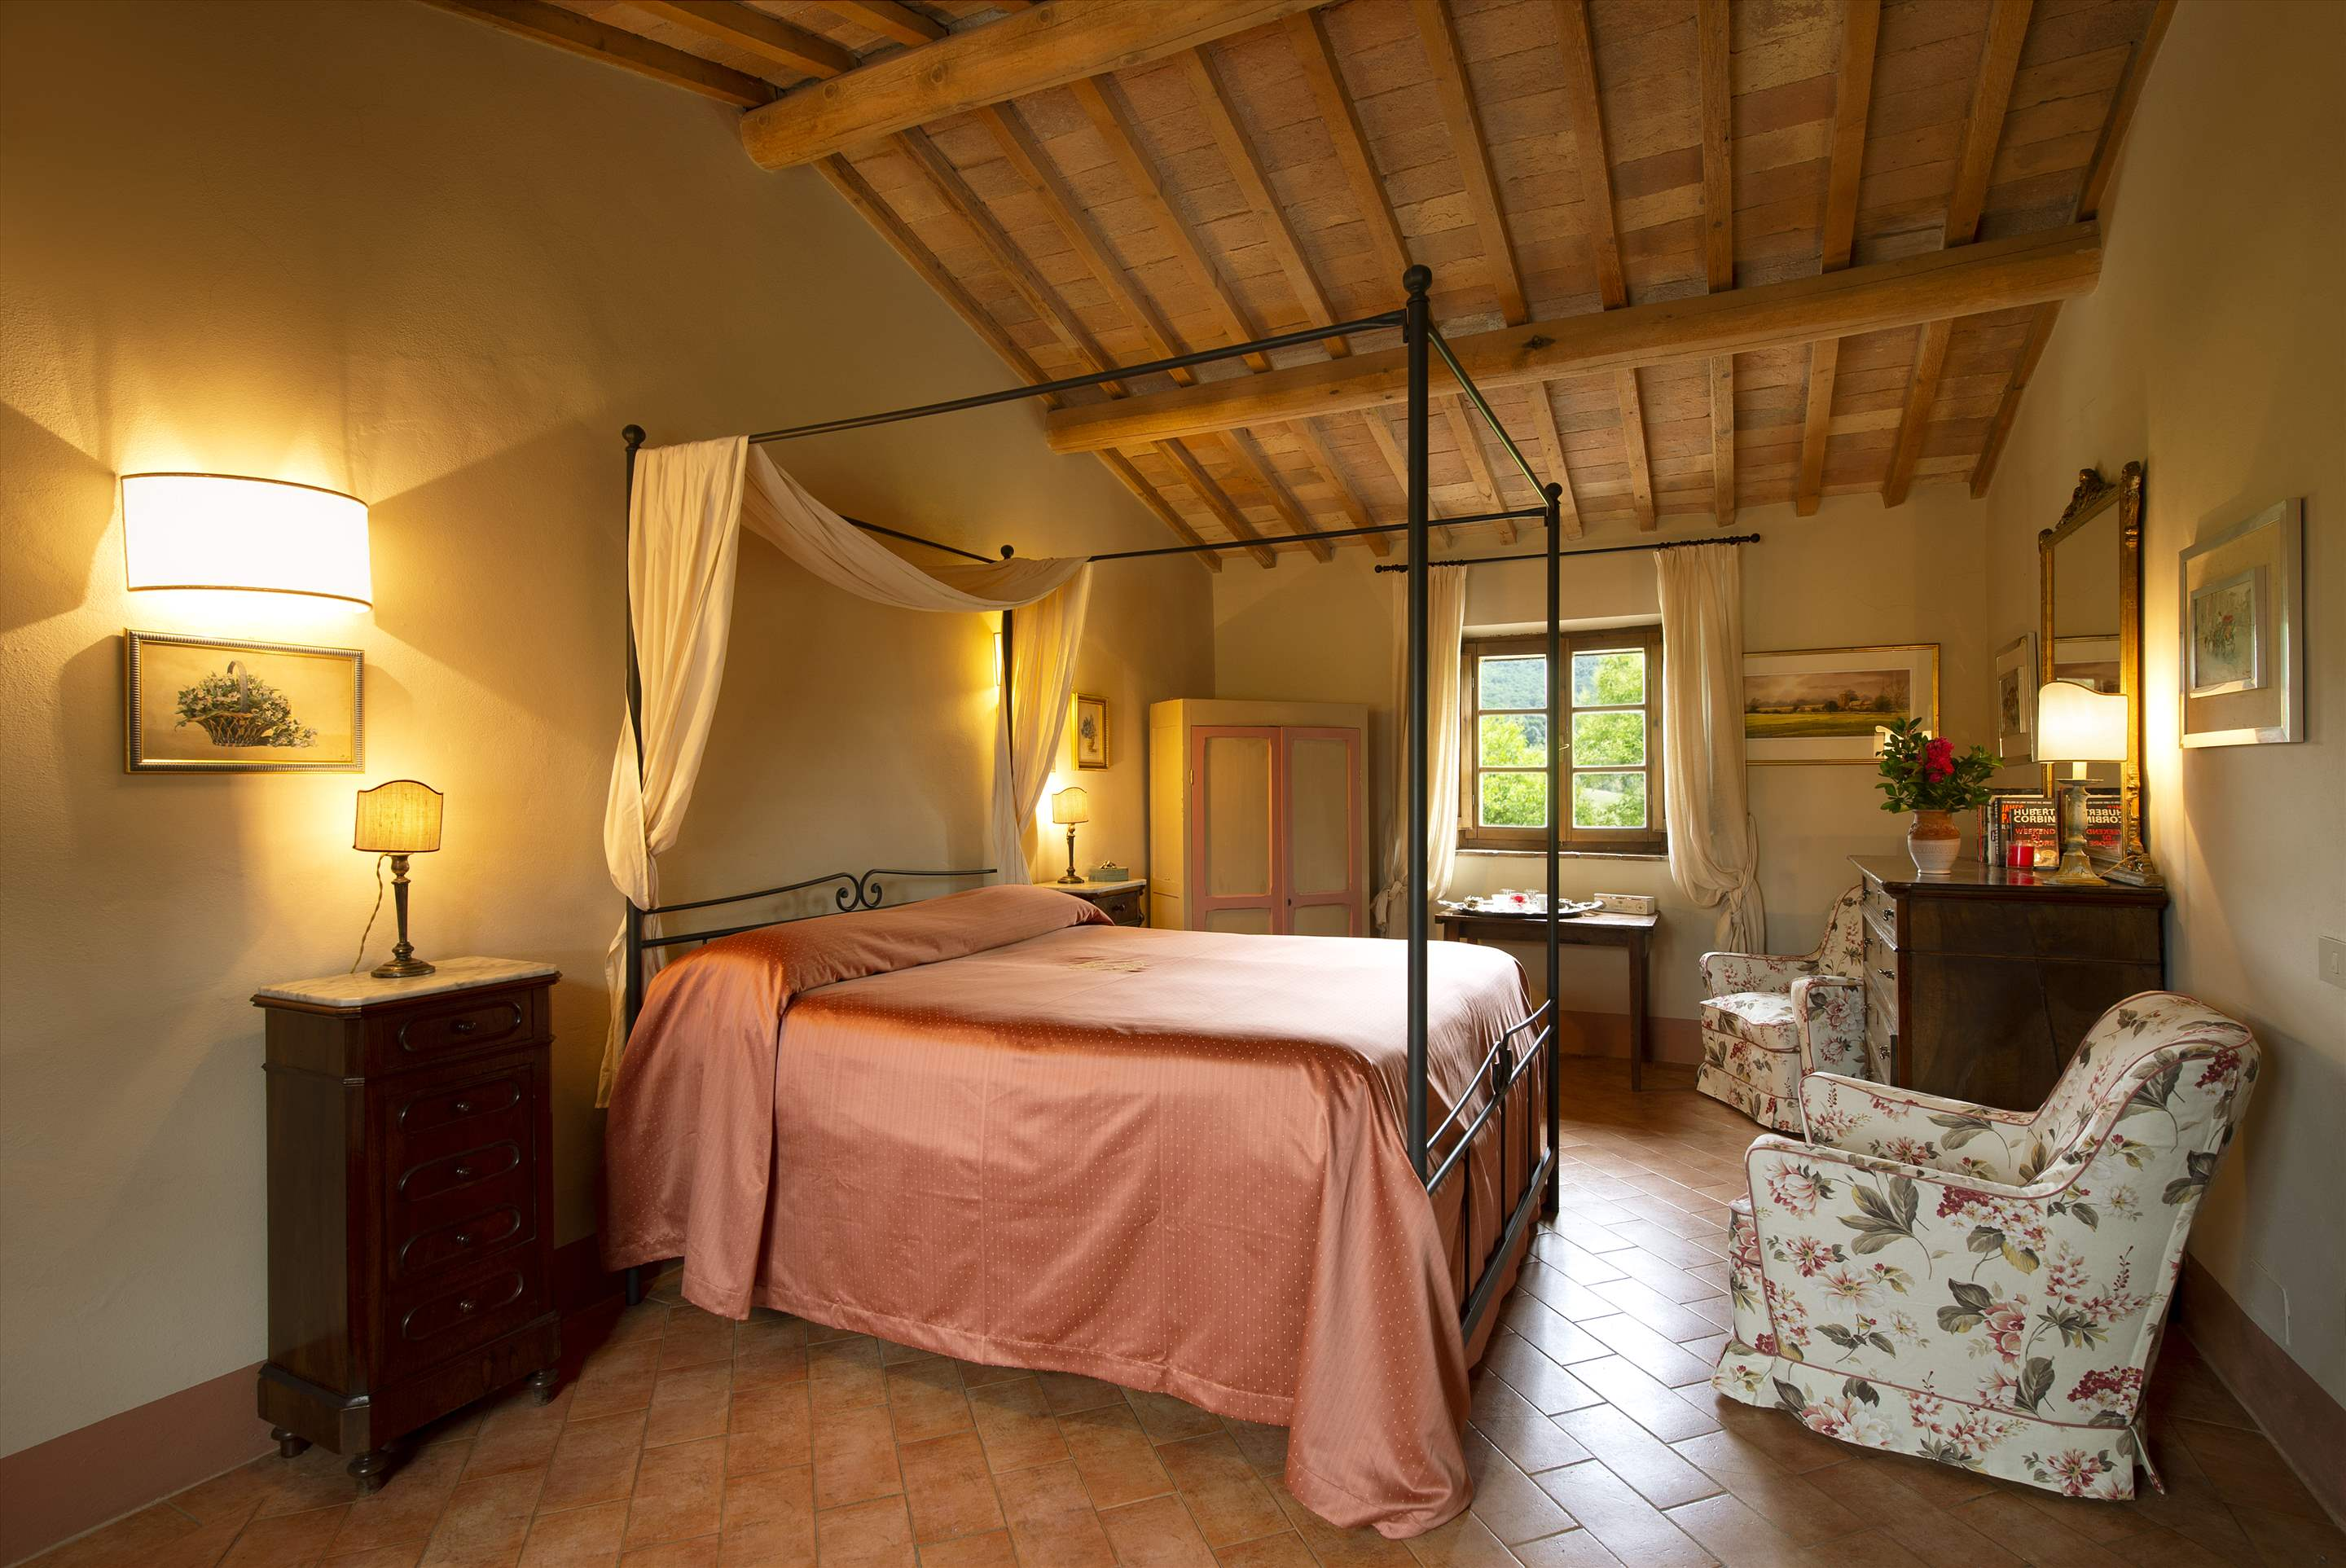 Villa Di Archi & Dependance, 9 bedroom villa in Tuscany Coast, Tuscany Photo #37